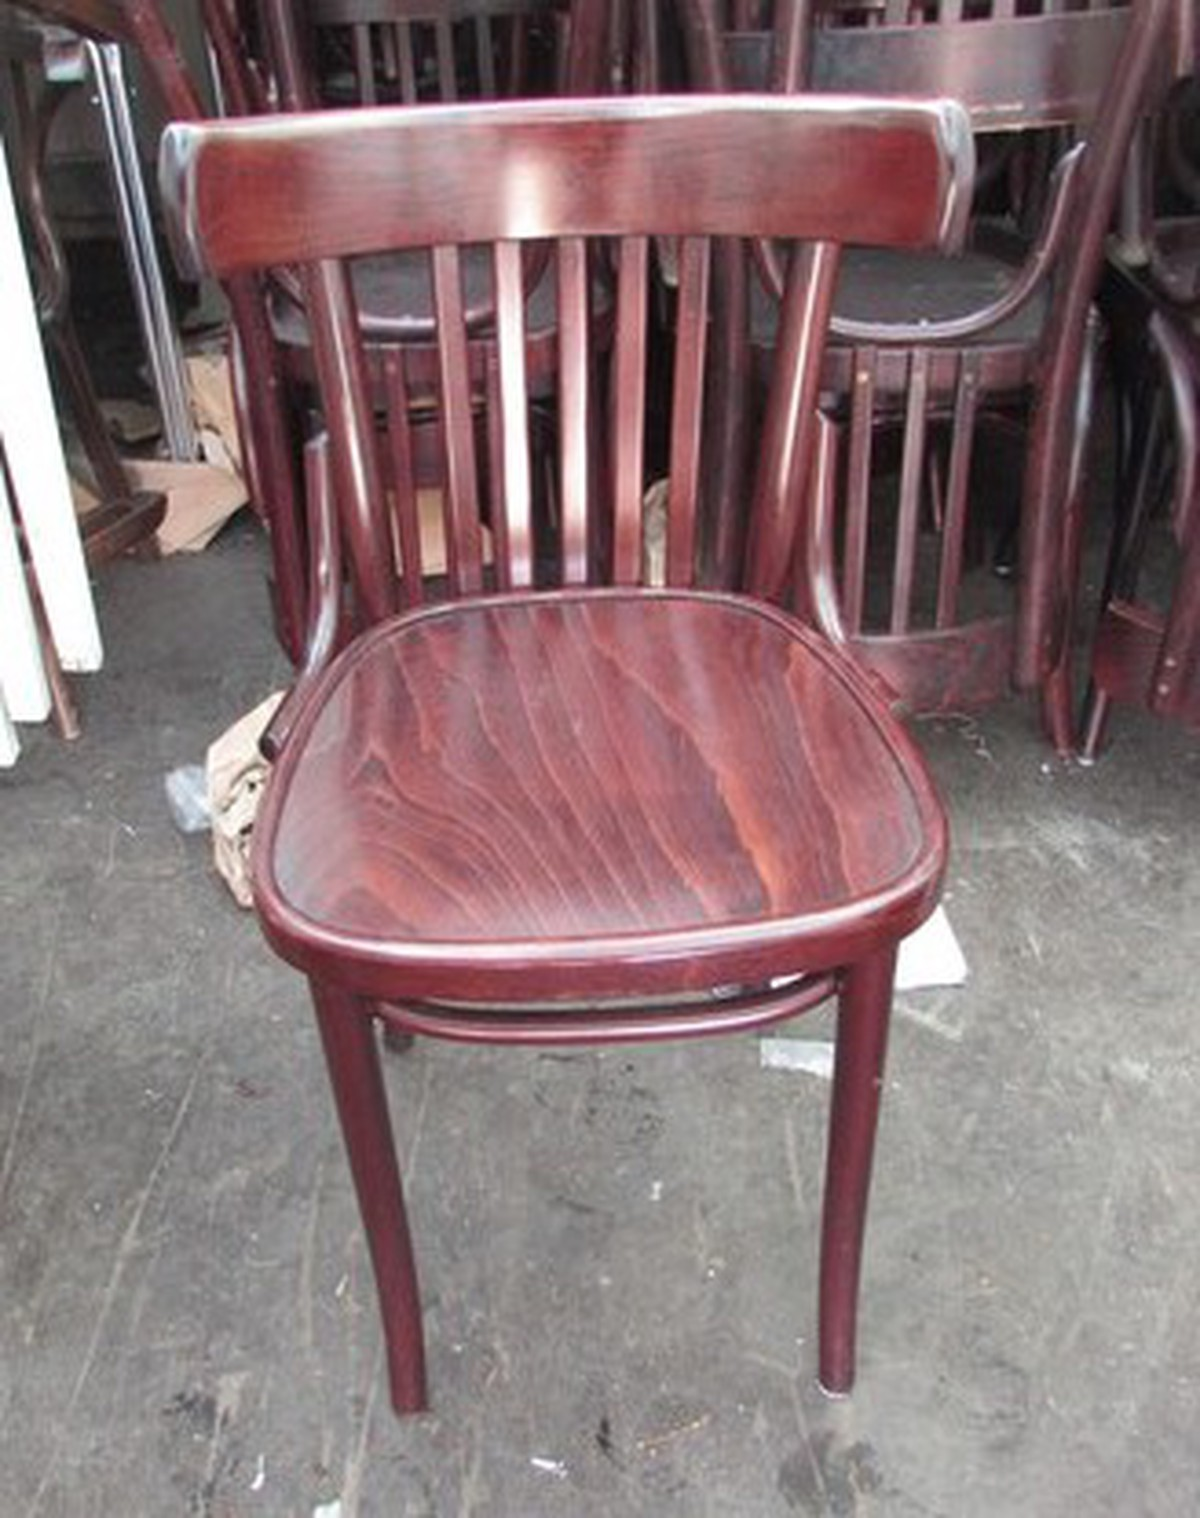 Restaurant Chairs For Sale Secondhand Chairs And Tables Restaurant Chairs 50x Pub